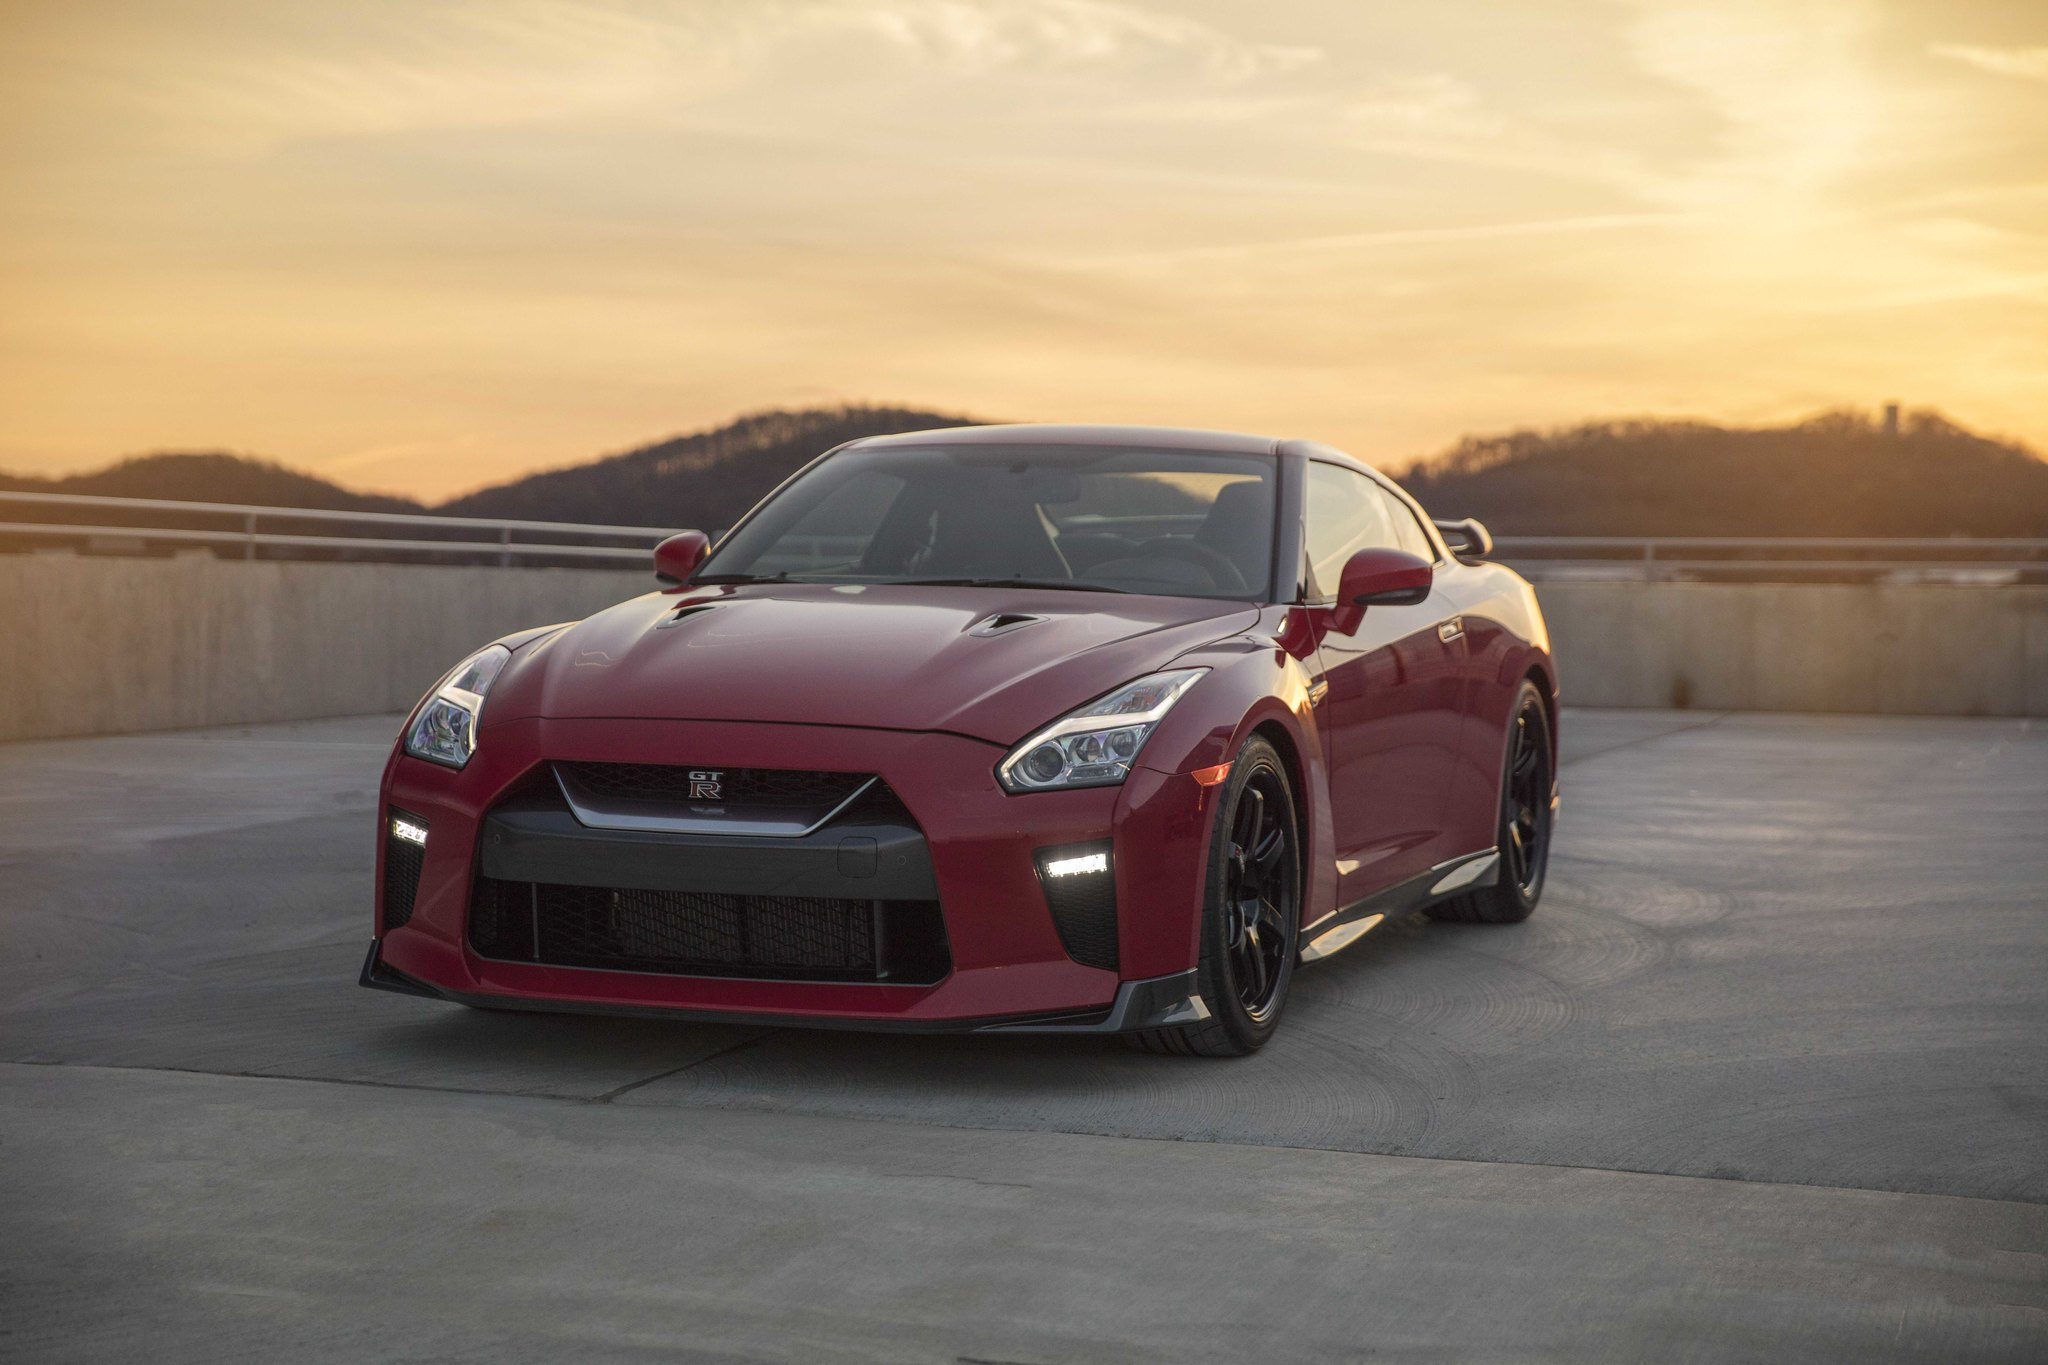 Nissan GT-R Track Edition set for U.S. debut at 2017 New York International Auto Show